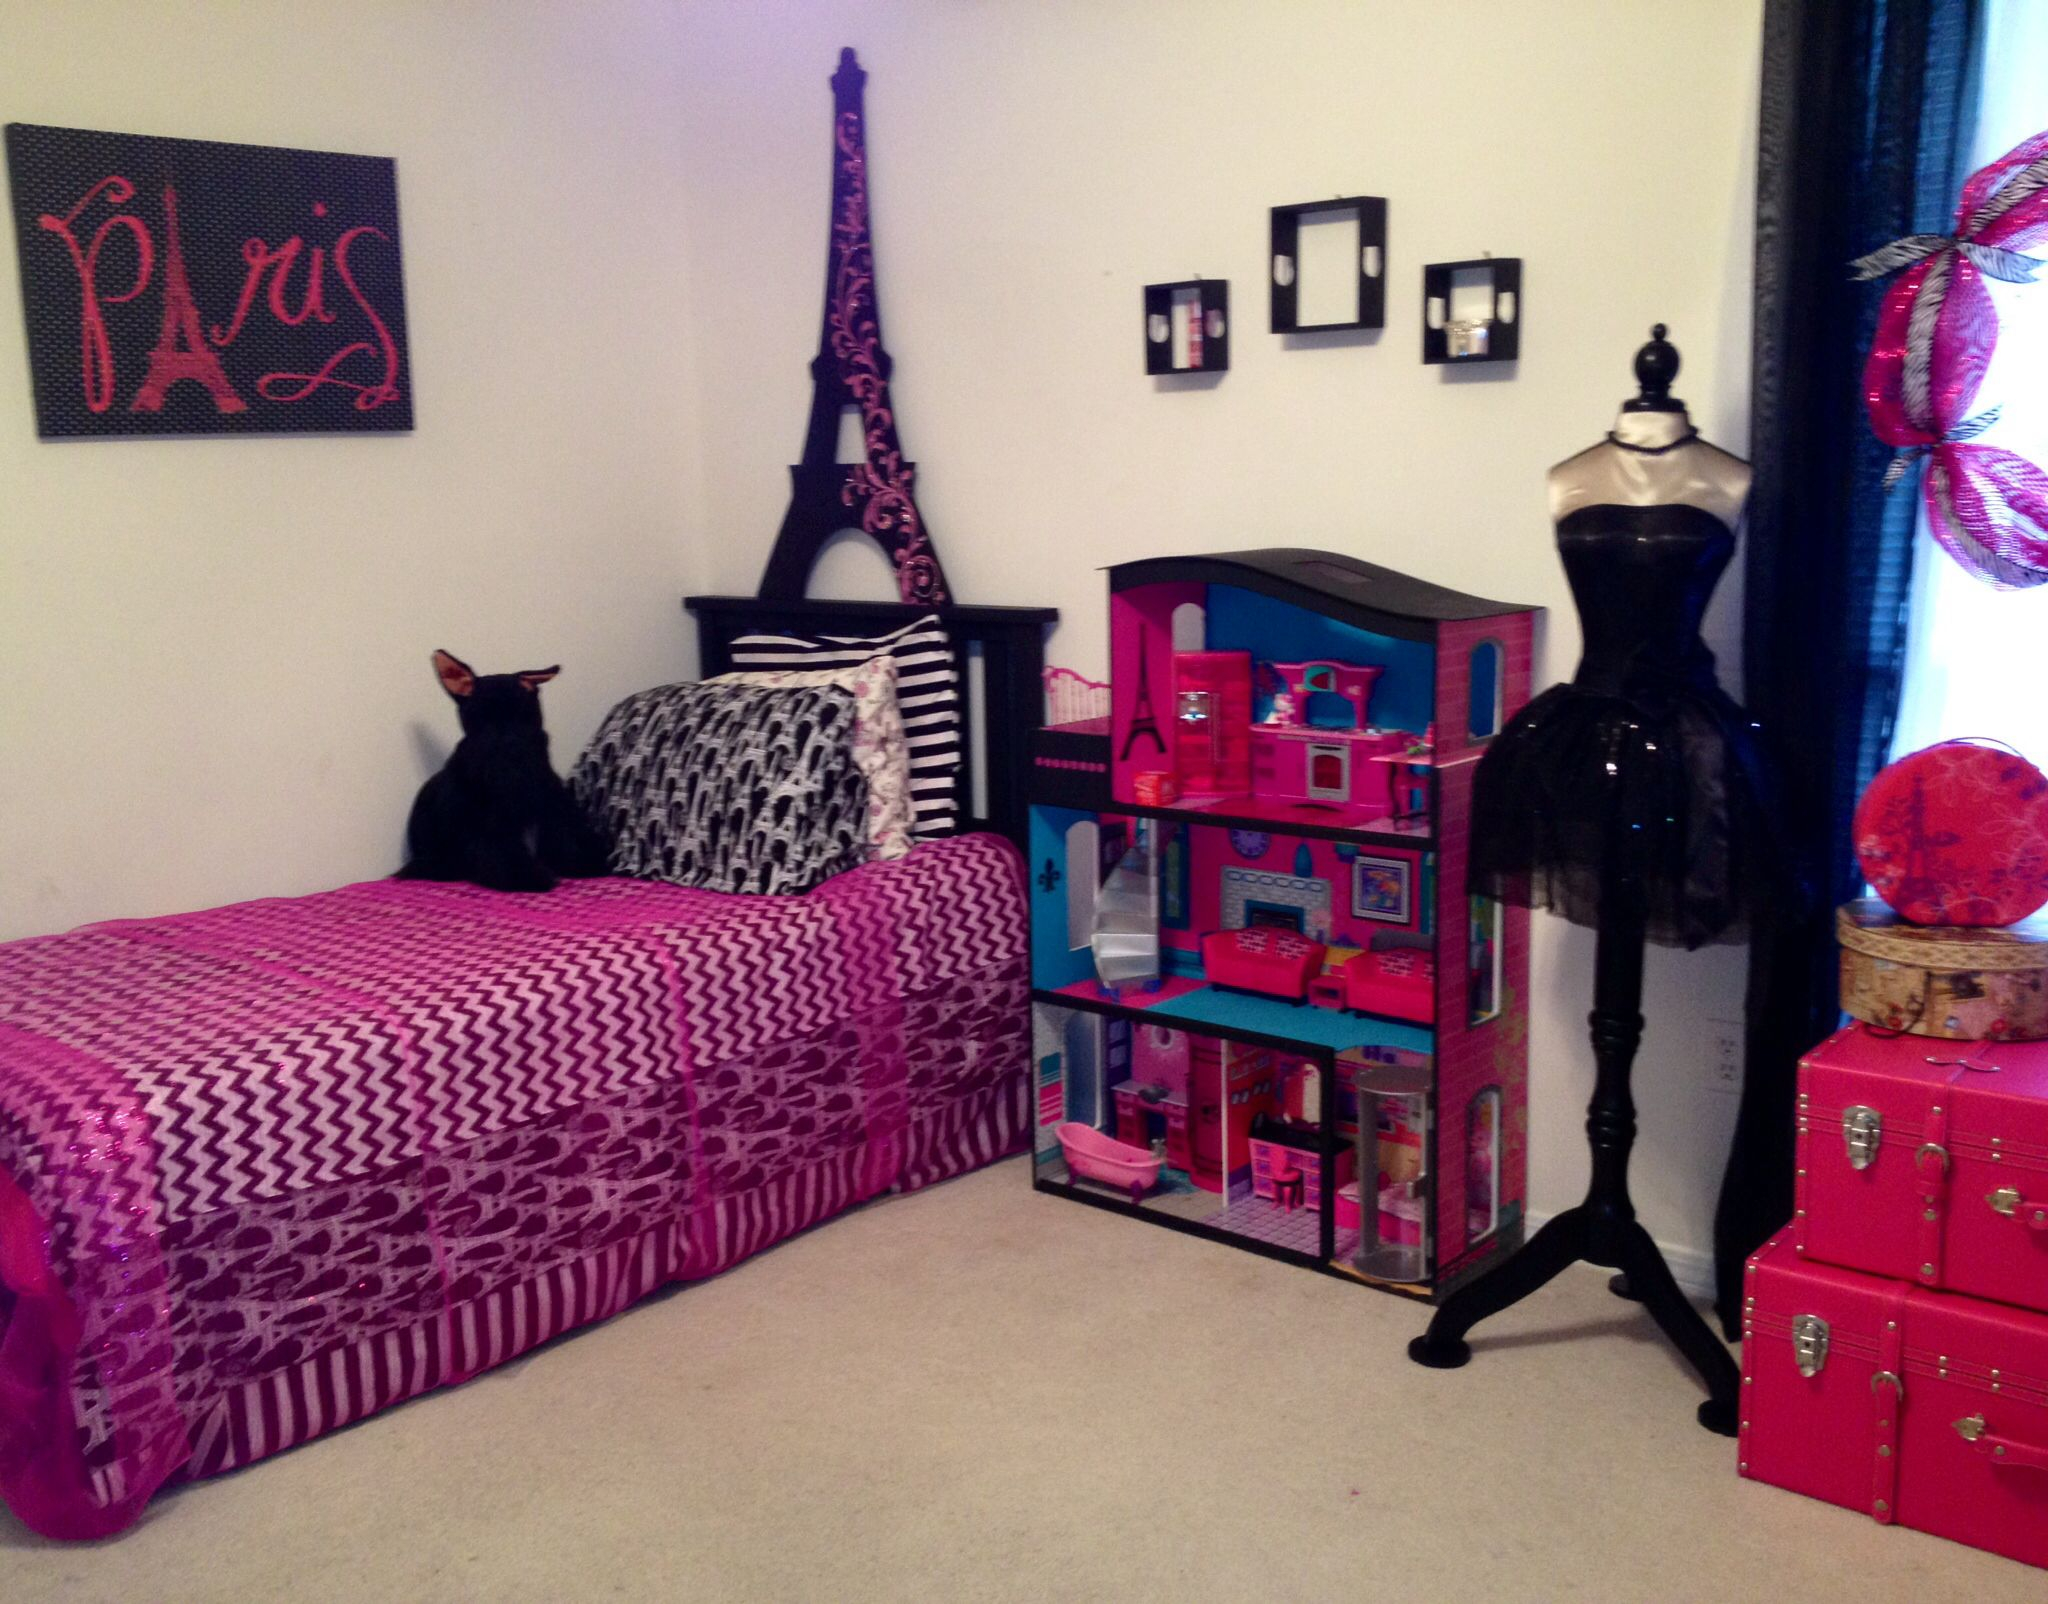 This Is Cutethe Colors Look Cute With Monster High For My 6 Year intended for dimensions 2048 X 1604